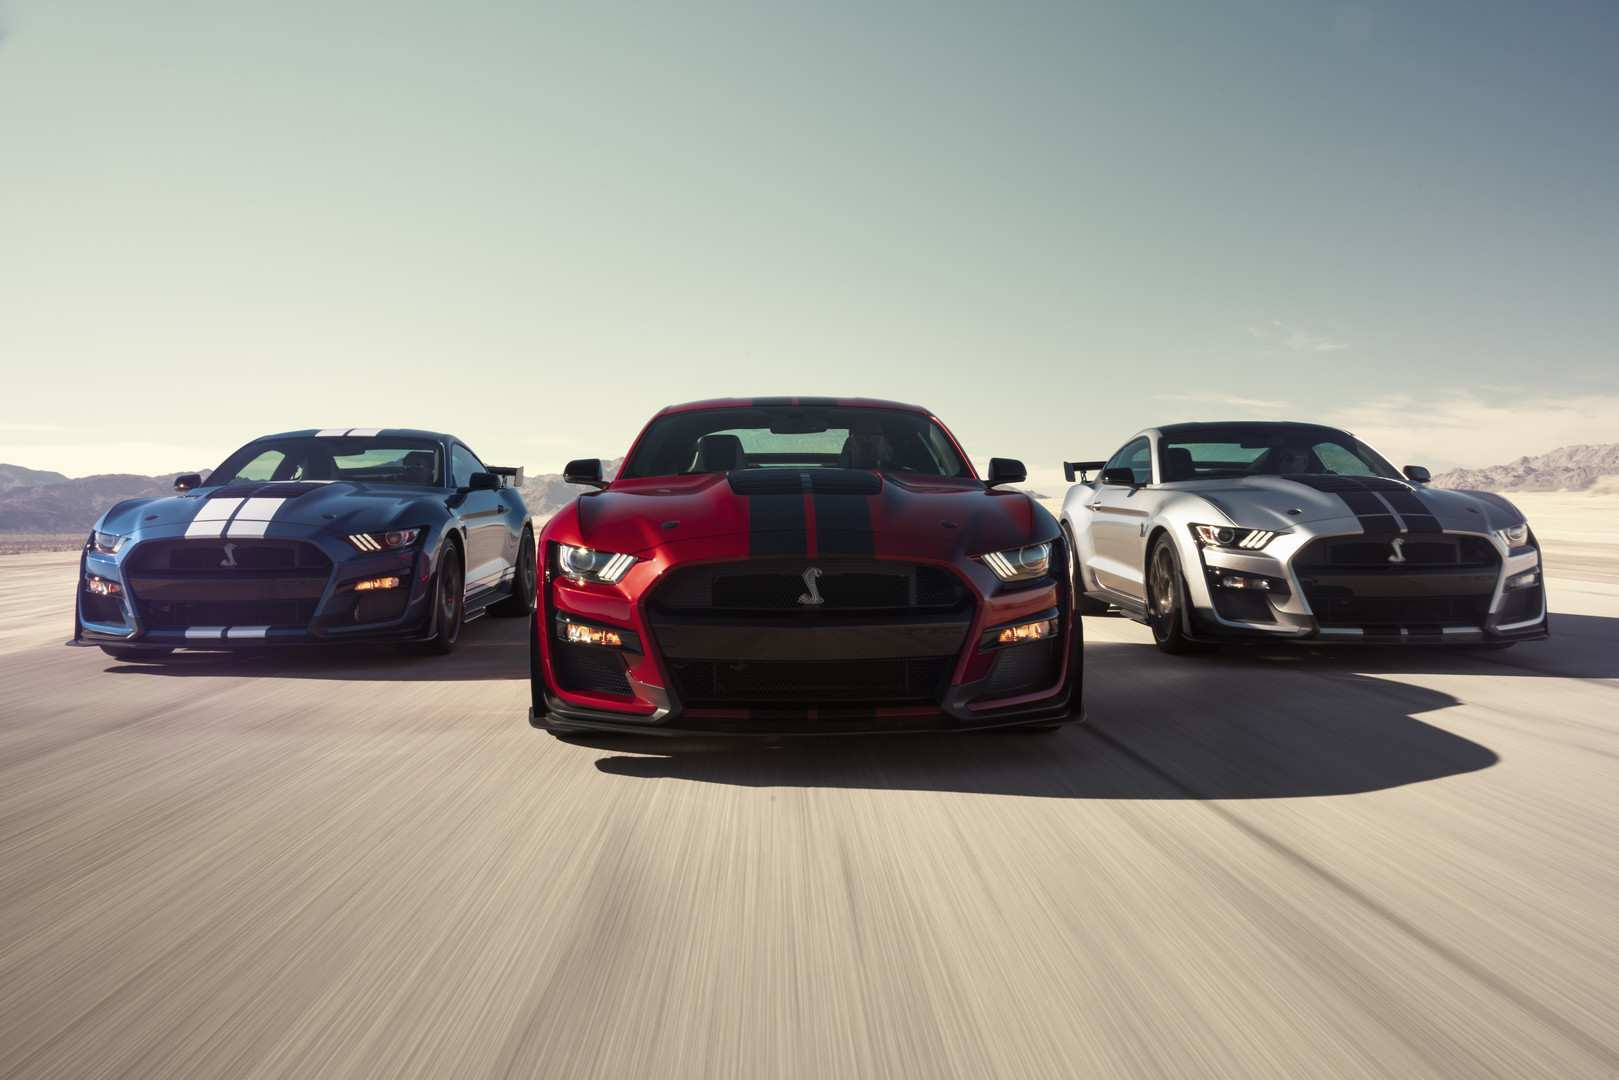 46 All New 2020 Ford Mustang Gt500 Pictures by 2020 Ford Mustang Gt500